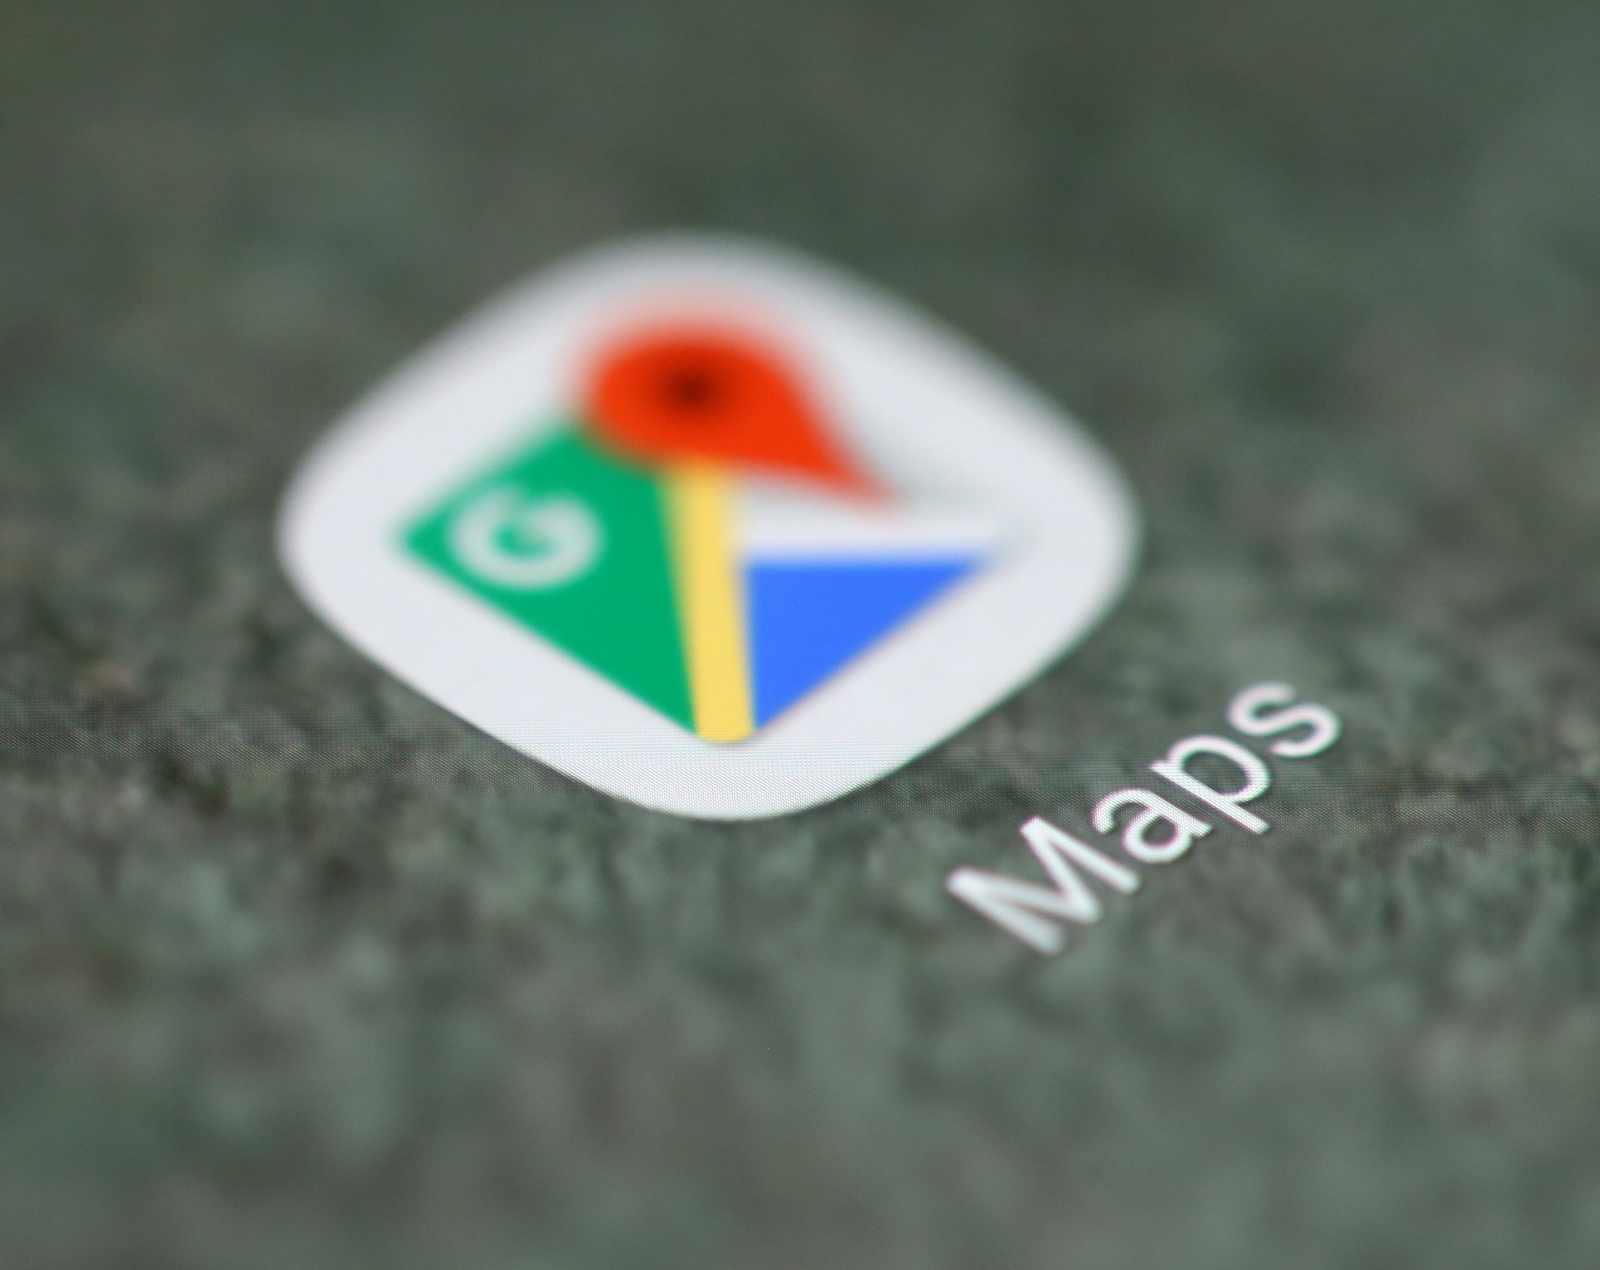 Google Maps latest update adds COVID-19 layer to show potential transmission hotspots